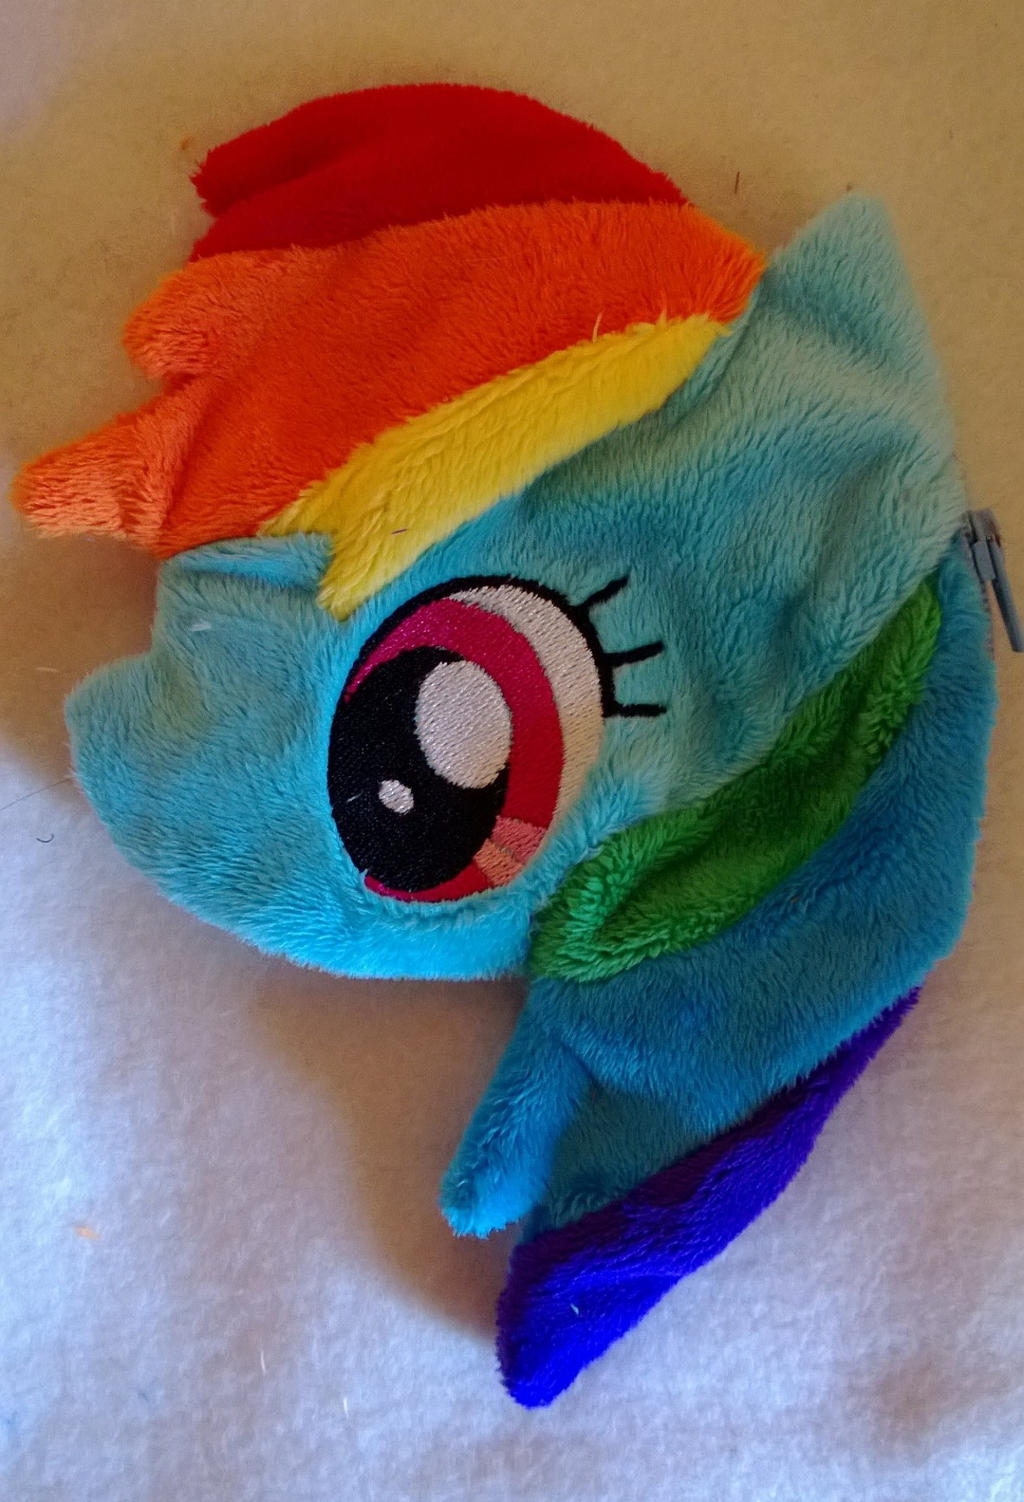 Rainbow dash coin purse for sale by LRK-Creations